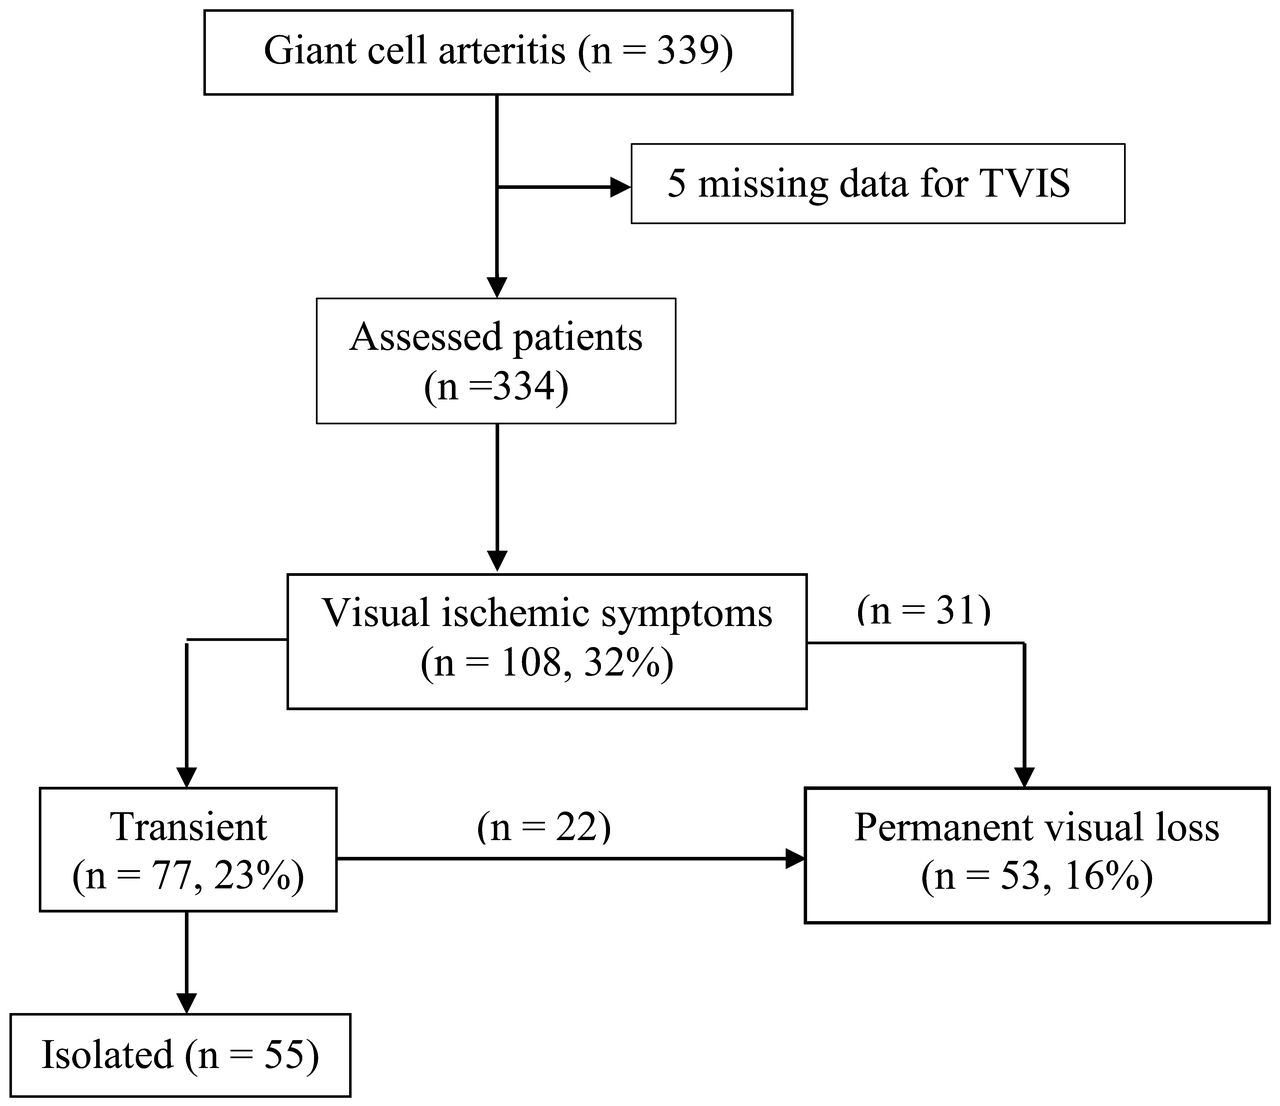 Risk Factors For Permanent Visual Loss In Biopsy Proven Giant Cell